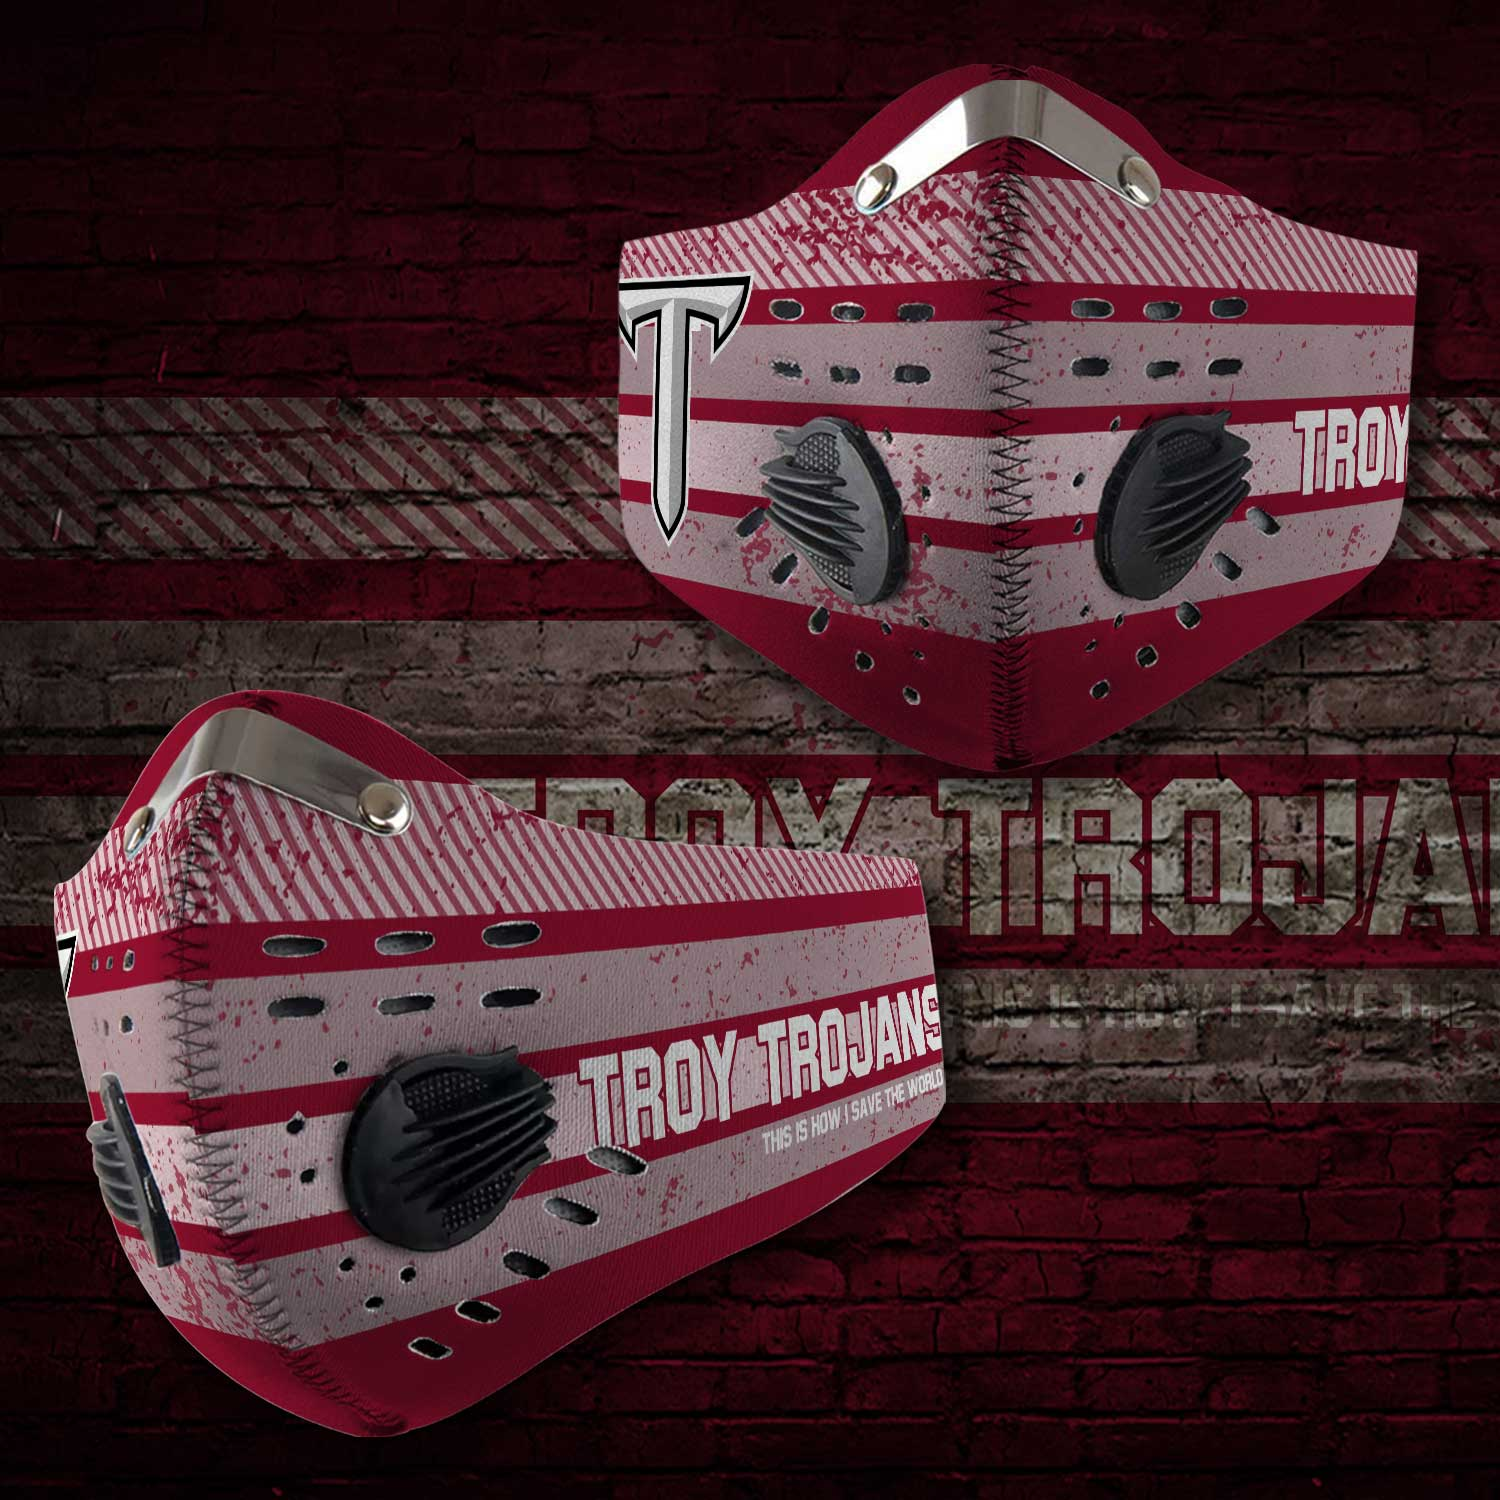 Troy trojans this is how i save the world carbon filter face mask 1